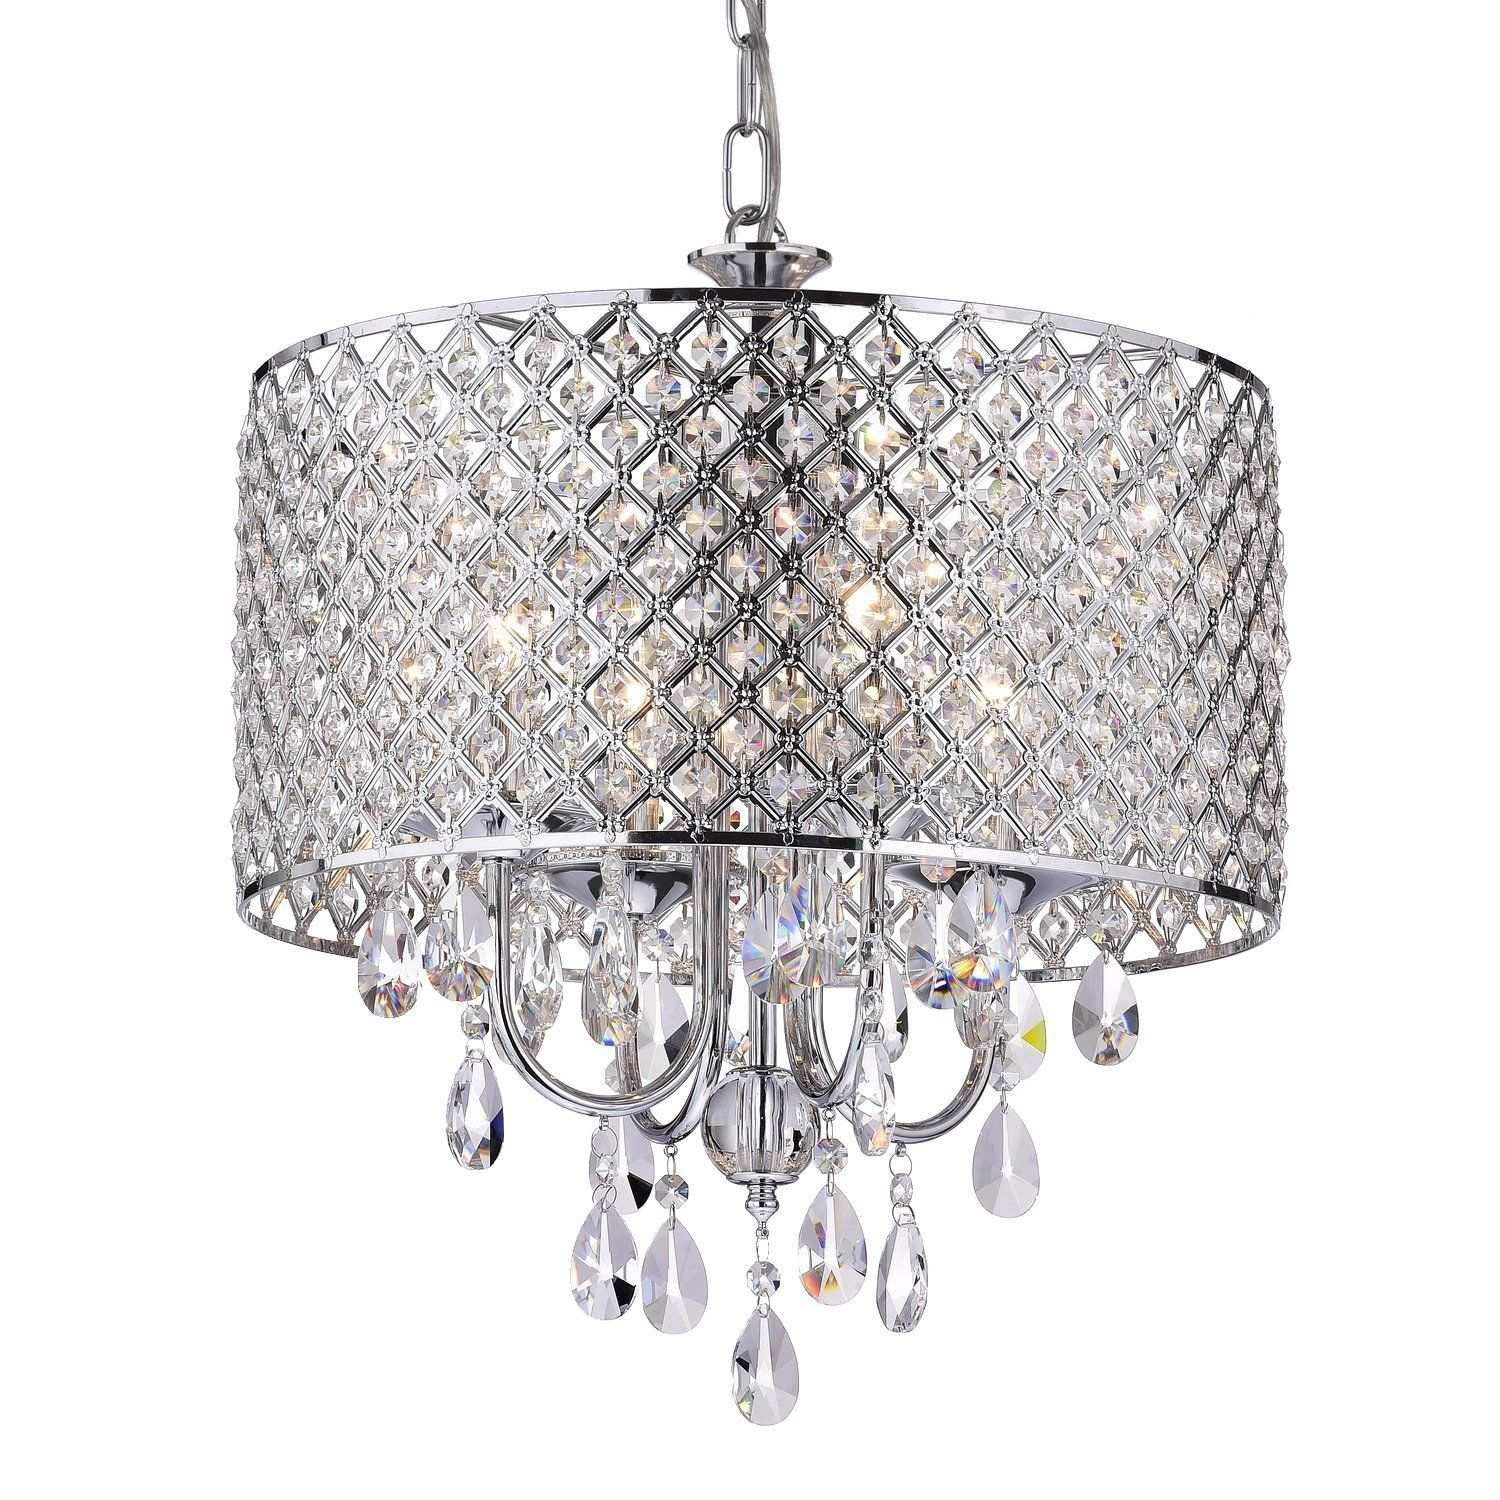 Edvivi Marya 4 Lights Chrome Round Crystal Chandelier Ceiling Fixture Beaded Drum Shade Round Chandelier Round Crystal Chandelier Glam Lighting